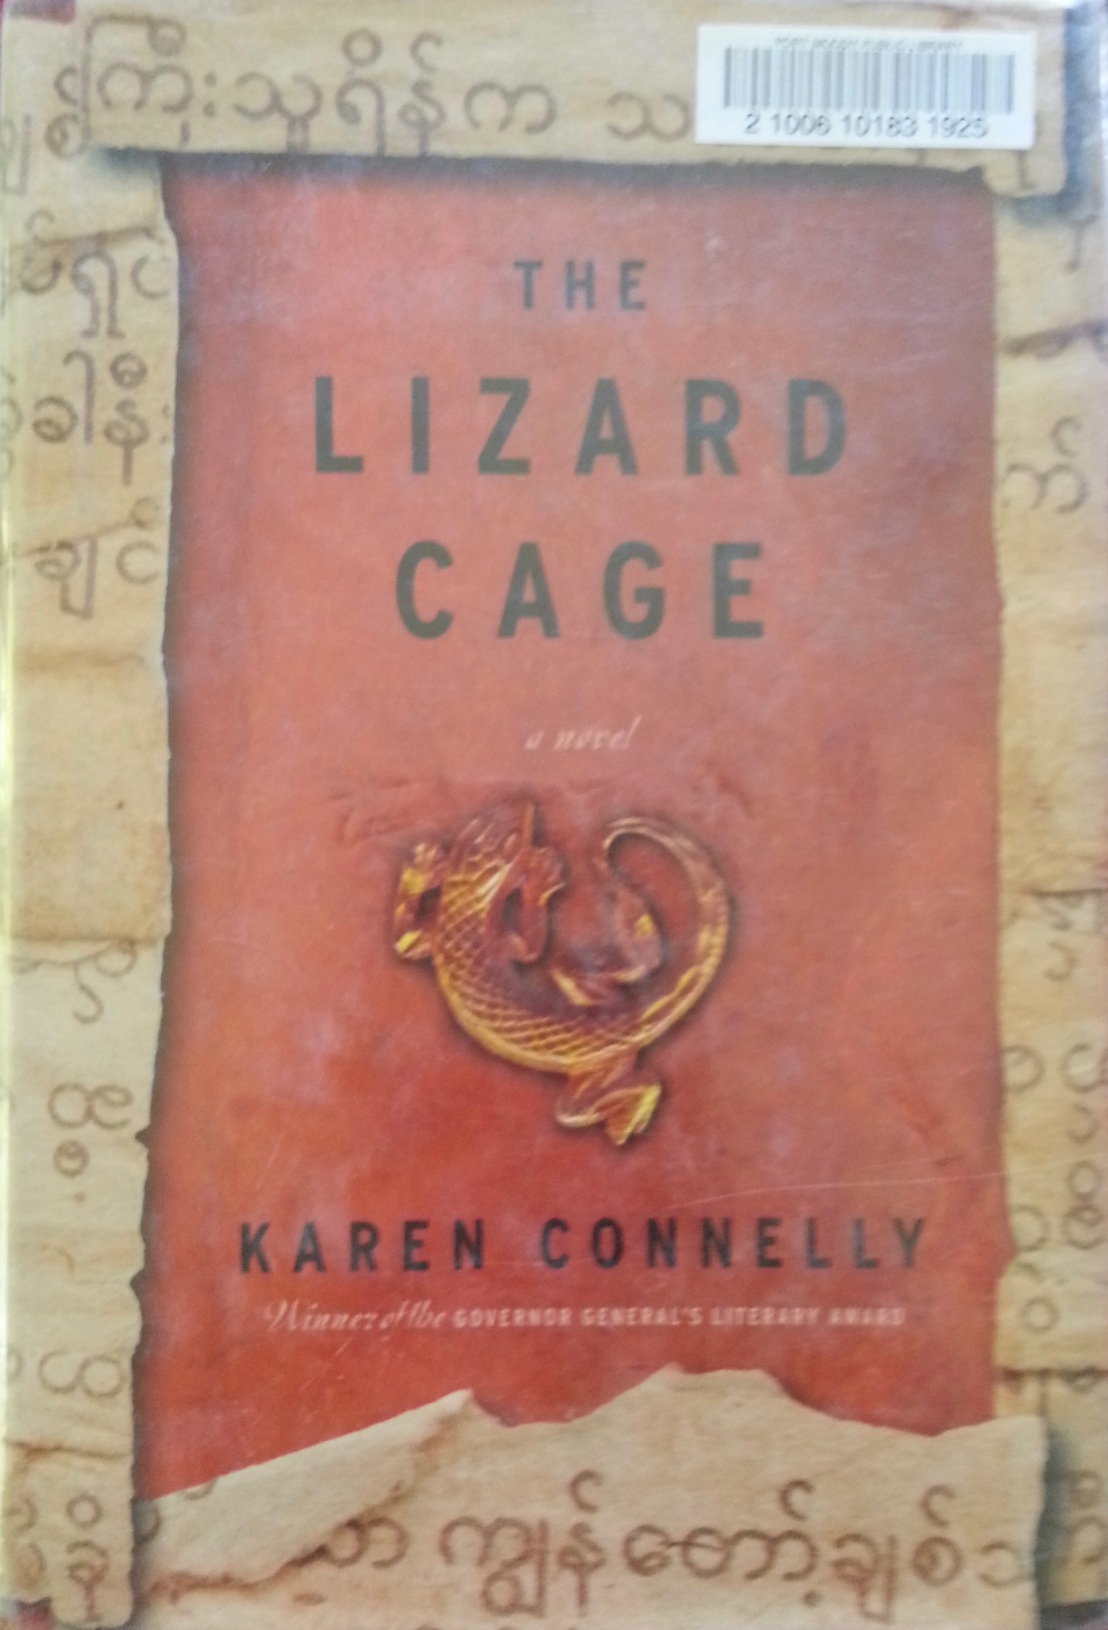 Karen Connelly's — The Lizard Cage *****